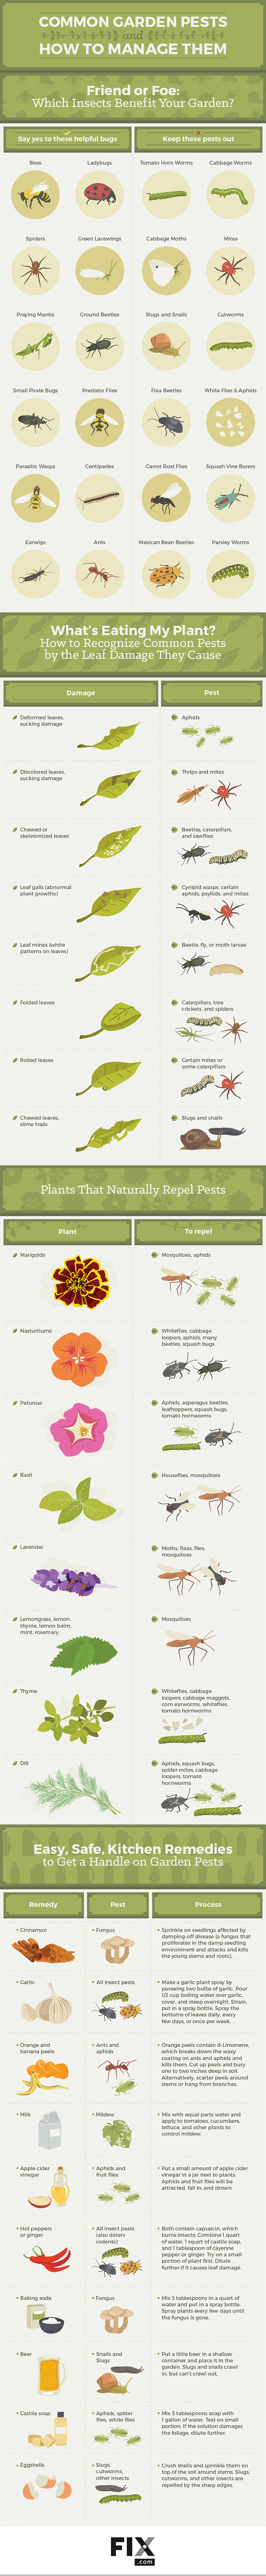 Good bugs, bad bugs for companion planting